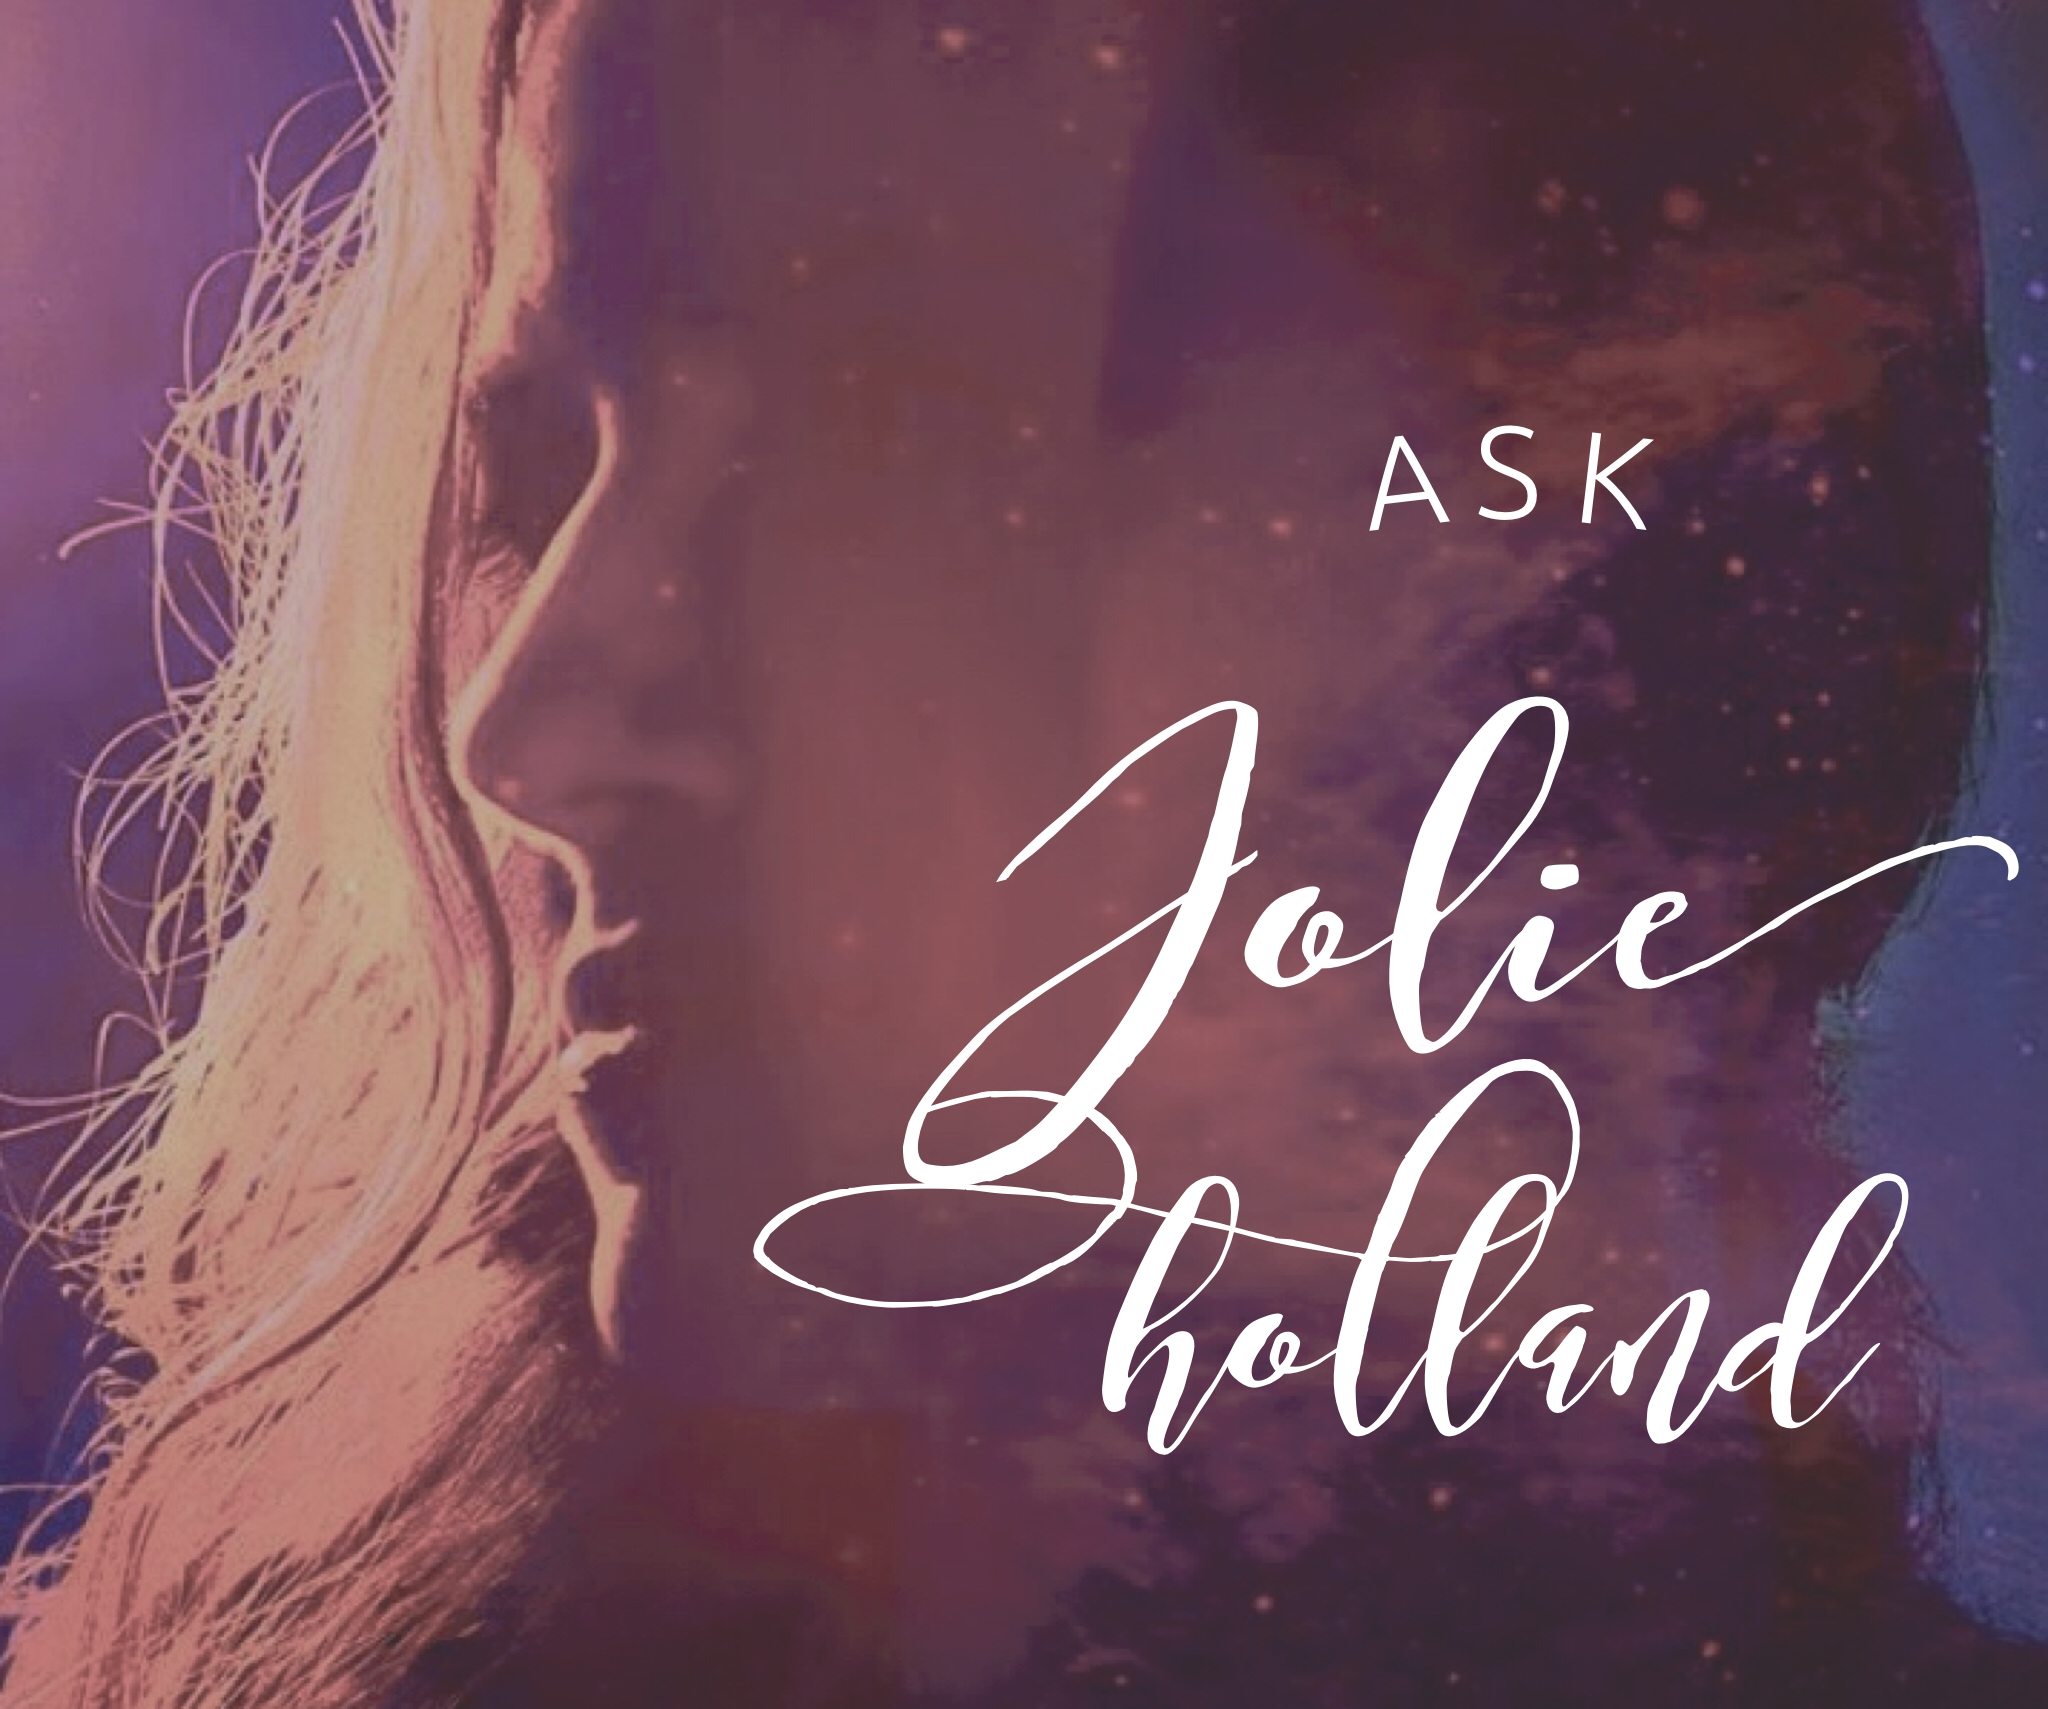 Ask Jolie Holland: Keeping the Family Ties